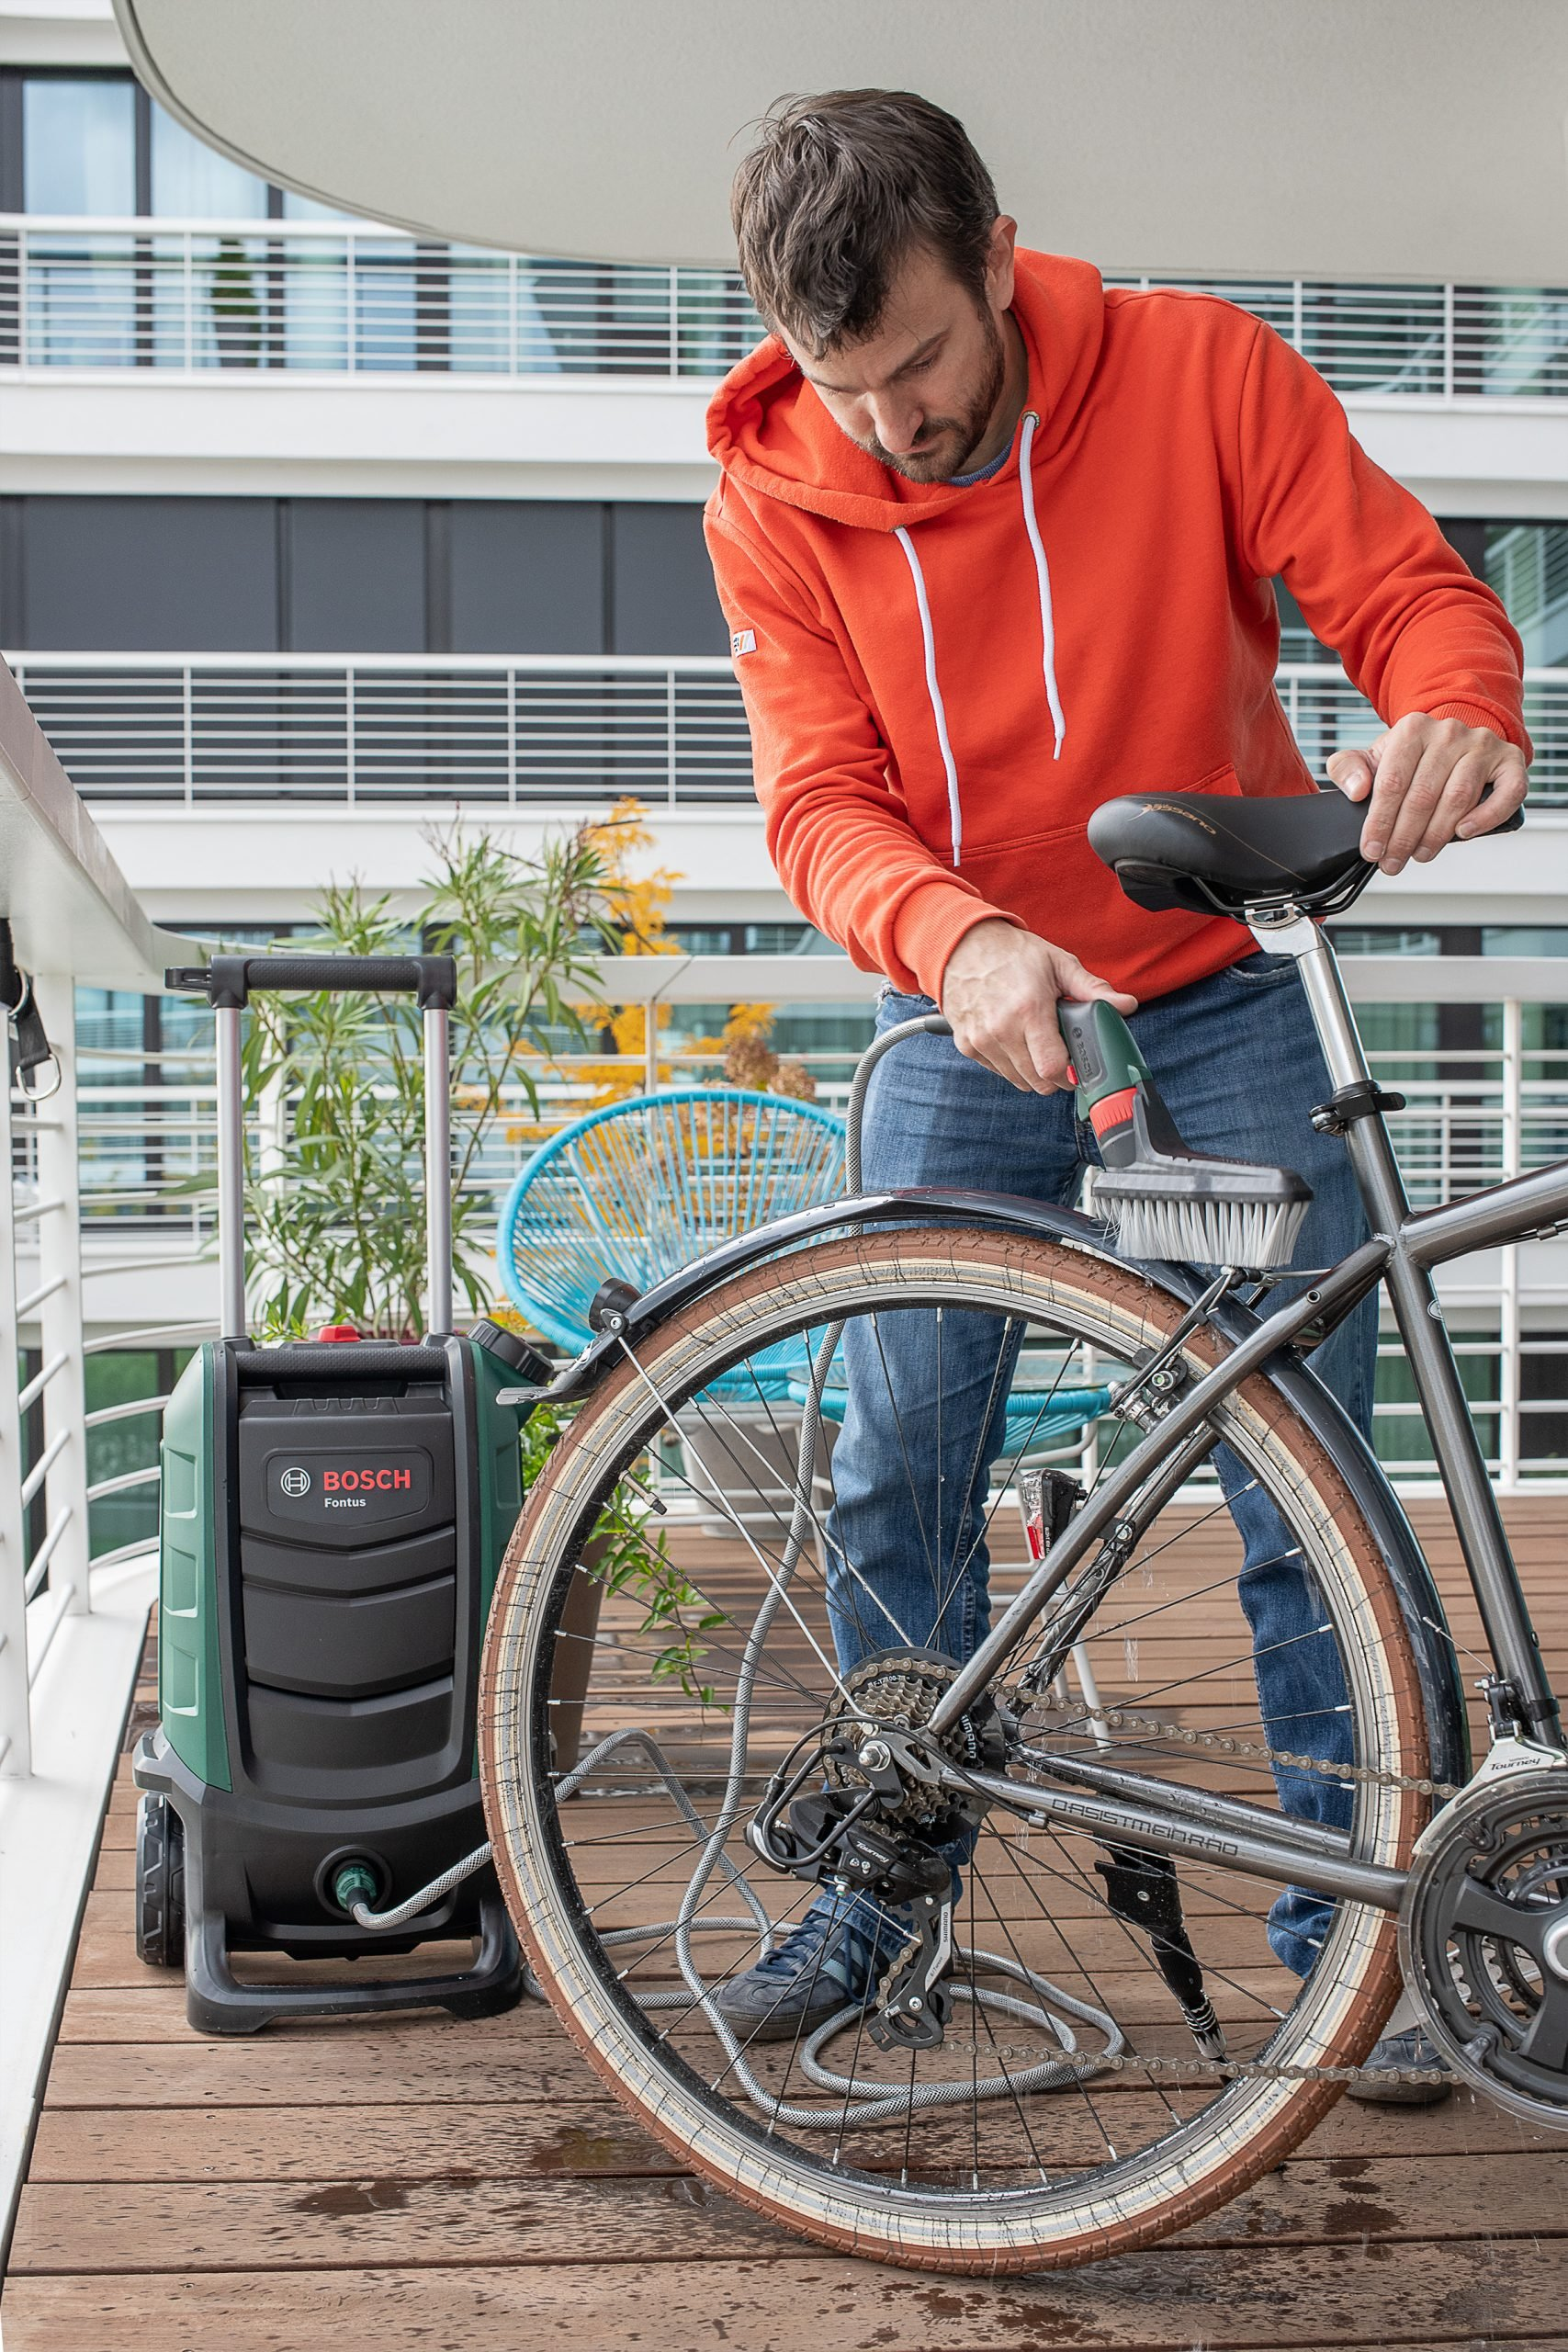 Cleaning Bike With Bosch Fontus